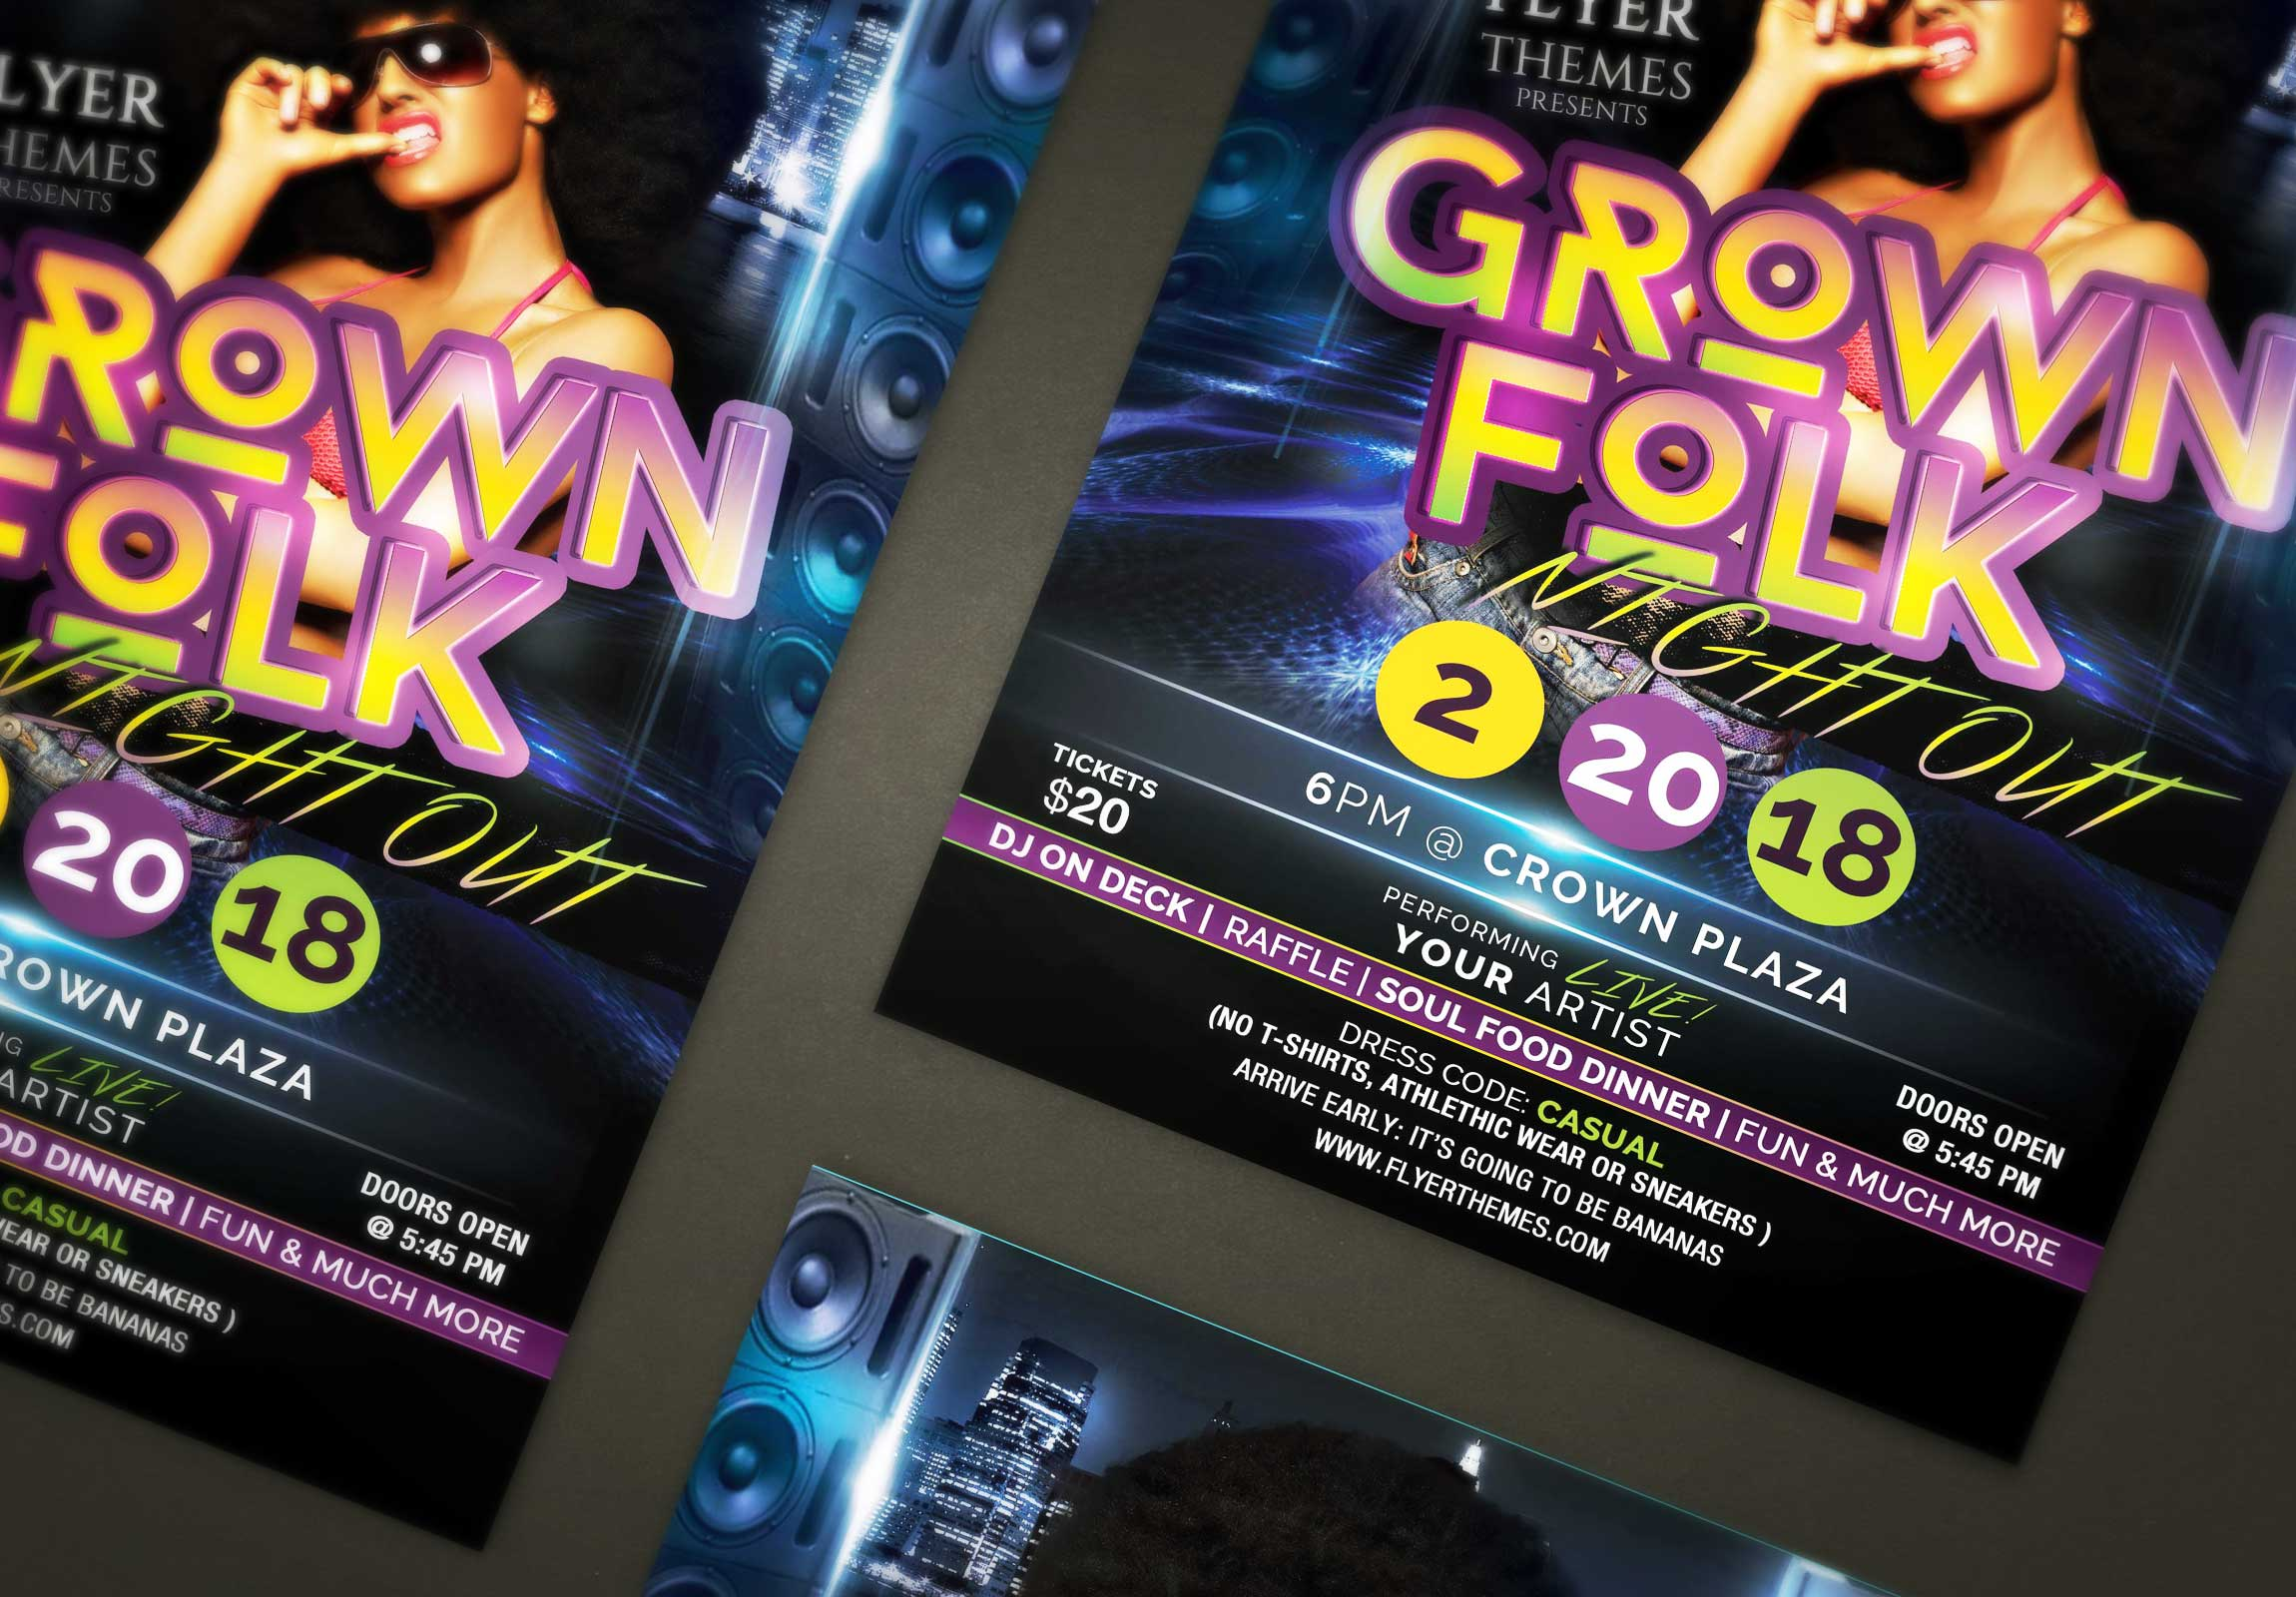 Grown Folk Night Out Flyer Template